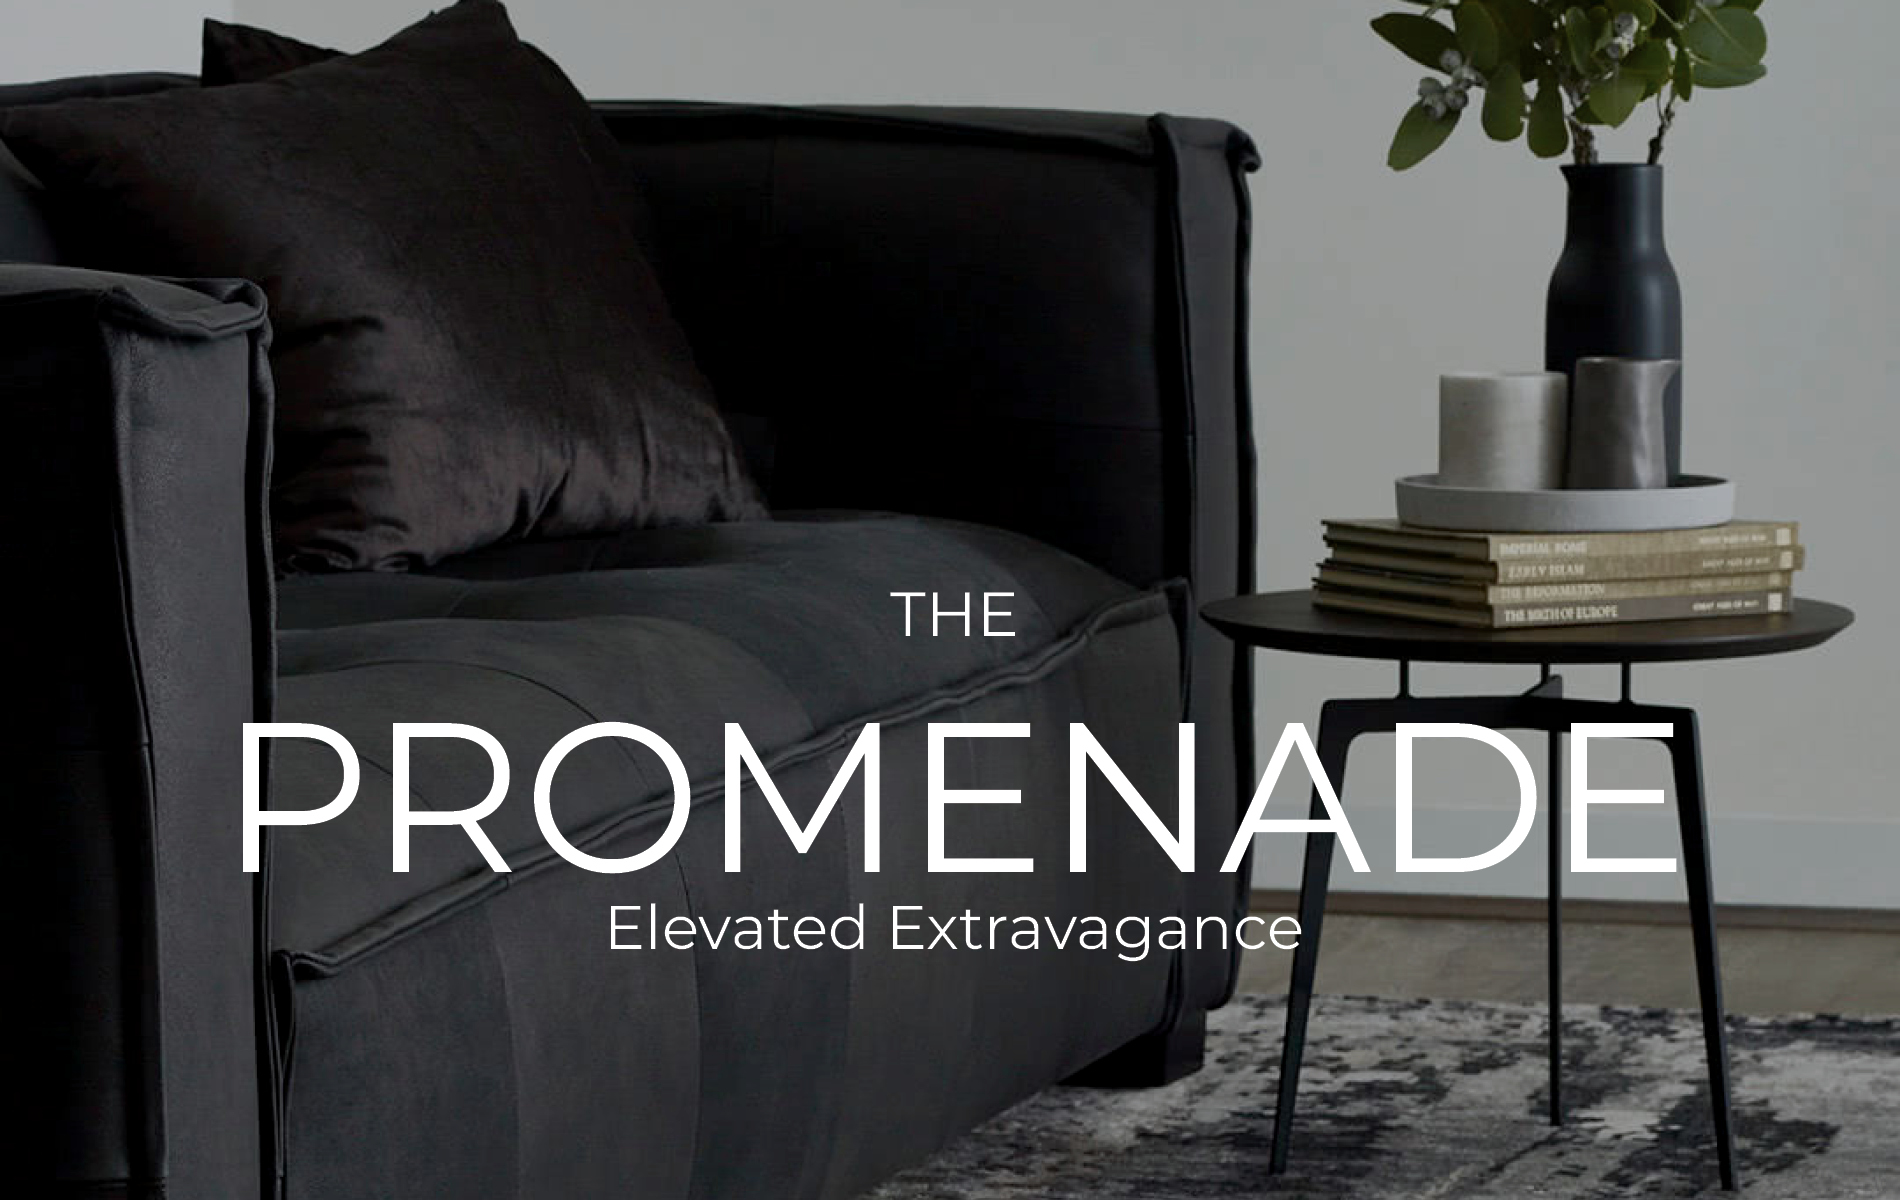 The Promenade - Elevated Extravagance